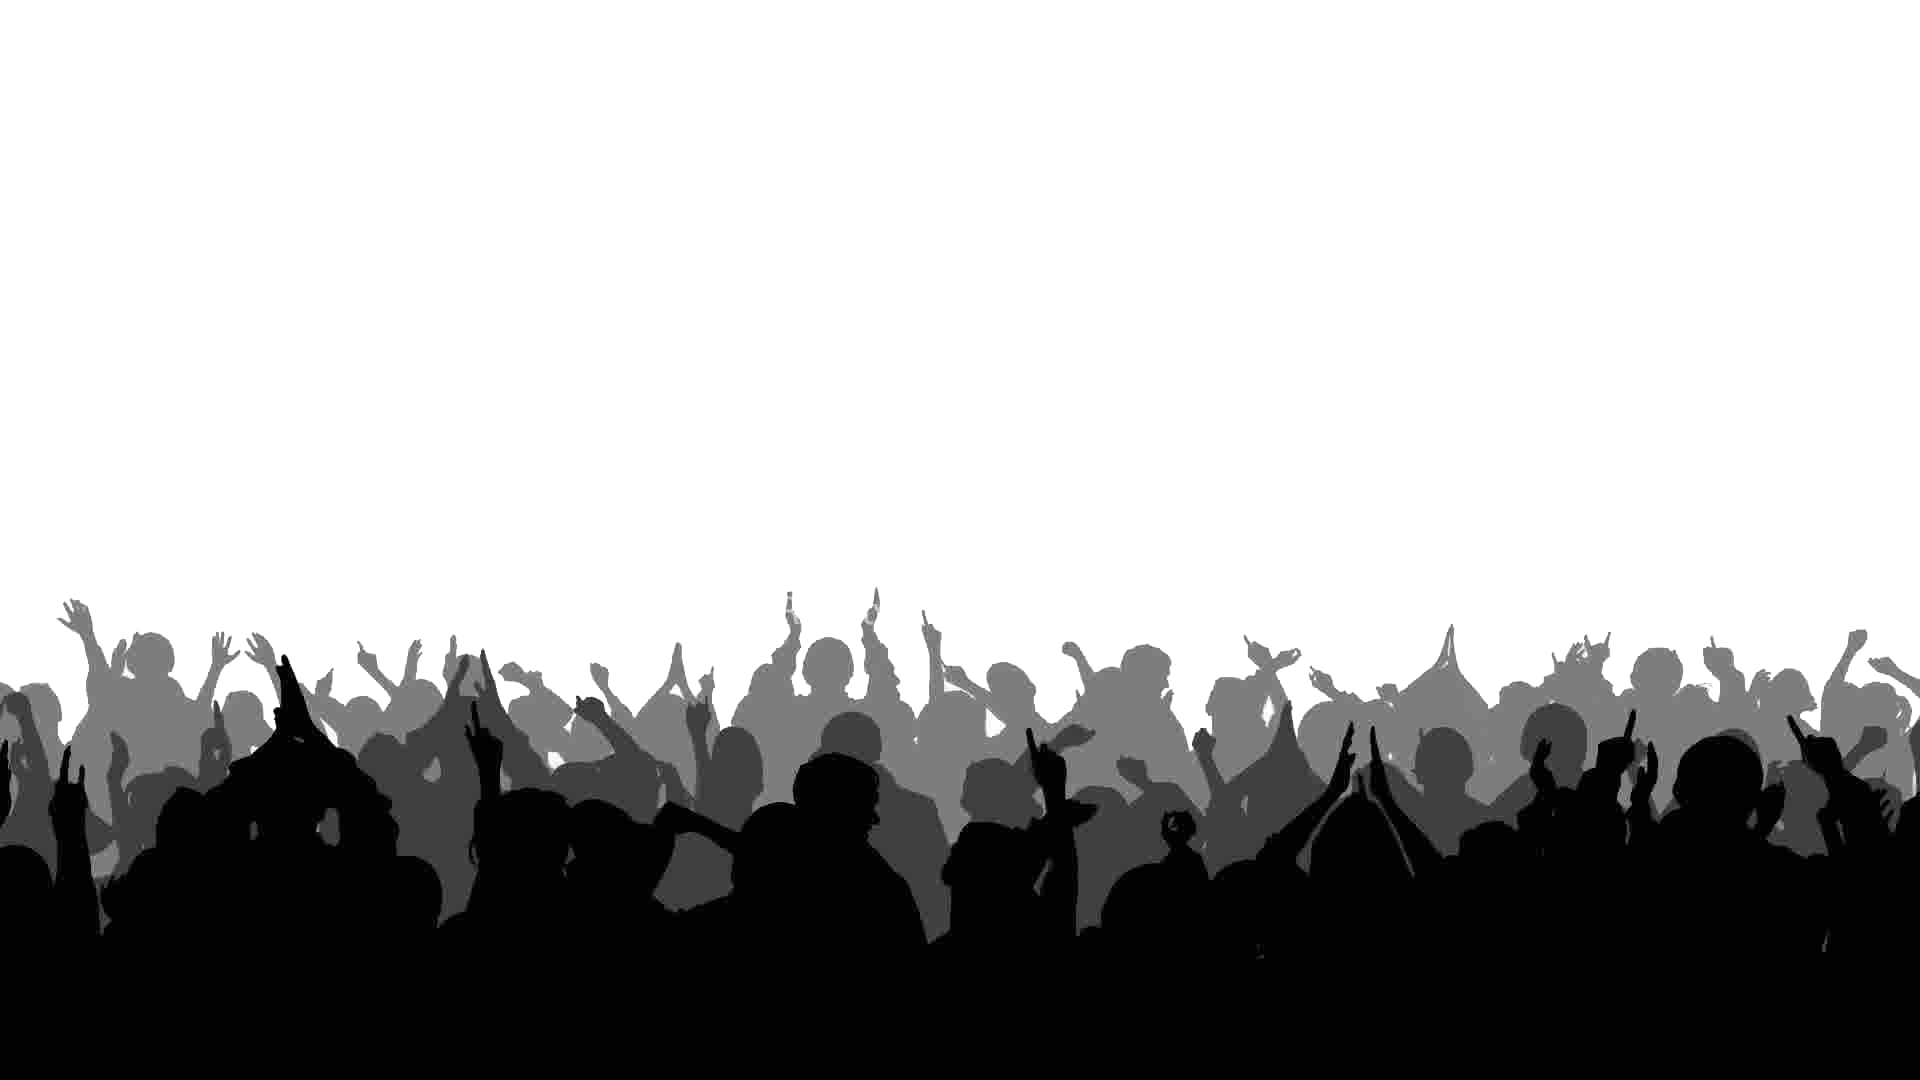 Silhouette Stock footage Crowd Clip art - crowd png download ... vector free